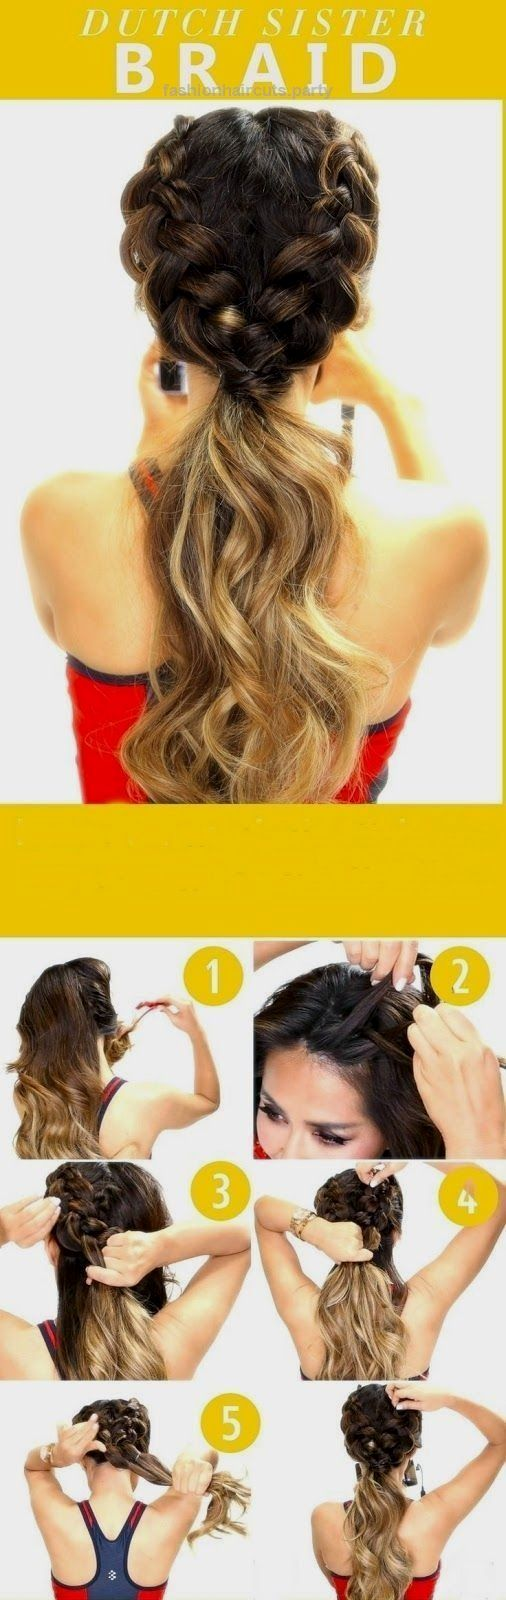 cool 10 Super-easy Trendy hairstyles for school. Quick, Easy, Cute  and Simple S…  cool 10 Super-easy Trendy hairstyles for school. Quick, Easy, Cute  and Simple Step By Step Girls and Teens Hairstyles for Back to School.  Great  ..  http://www.fashionhaircuts.party/2017/05/21/cool-10-super-easy-trendy-hairstyles-for-school-quick-easy-cute-and-simple-s/